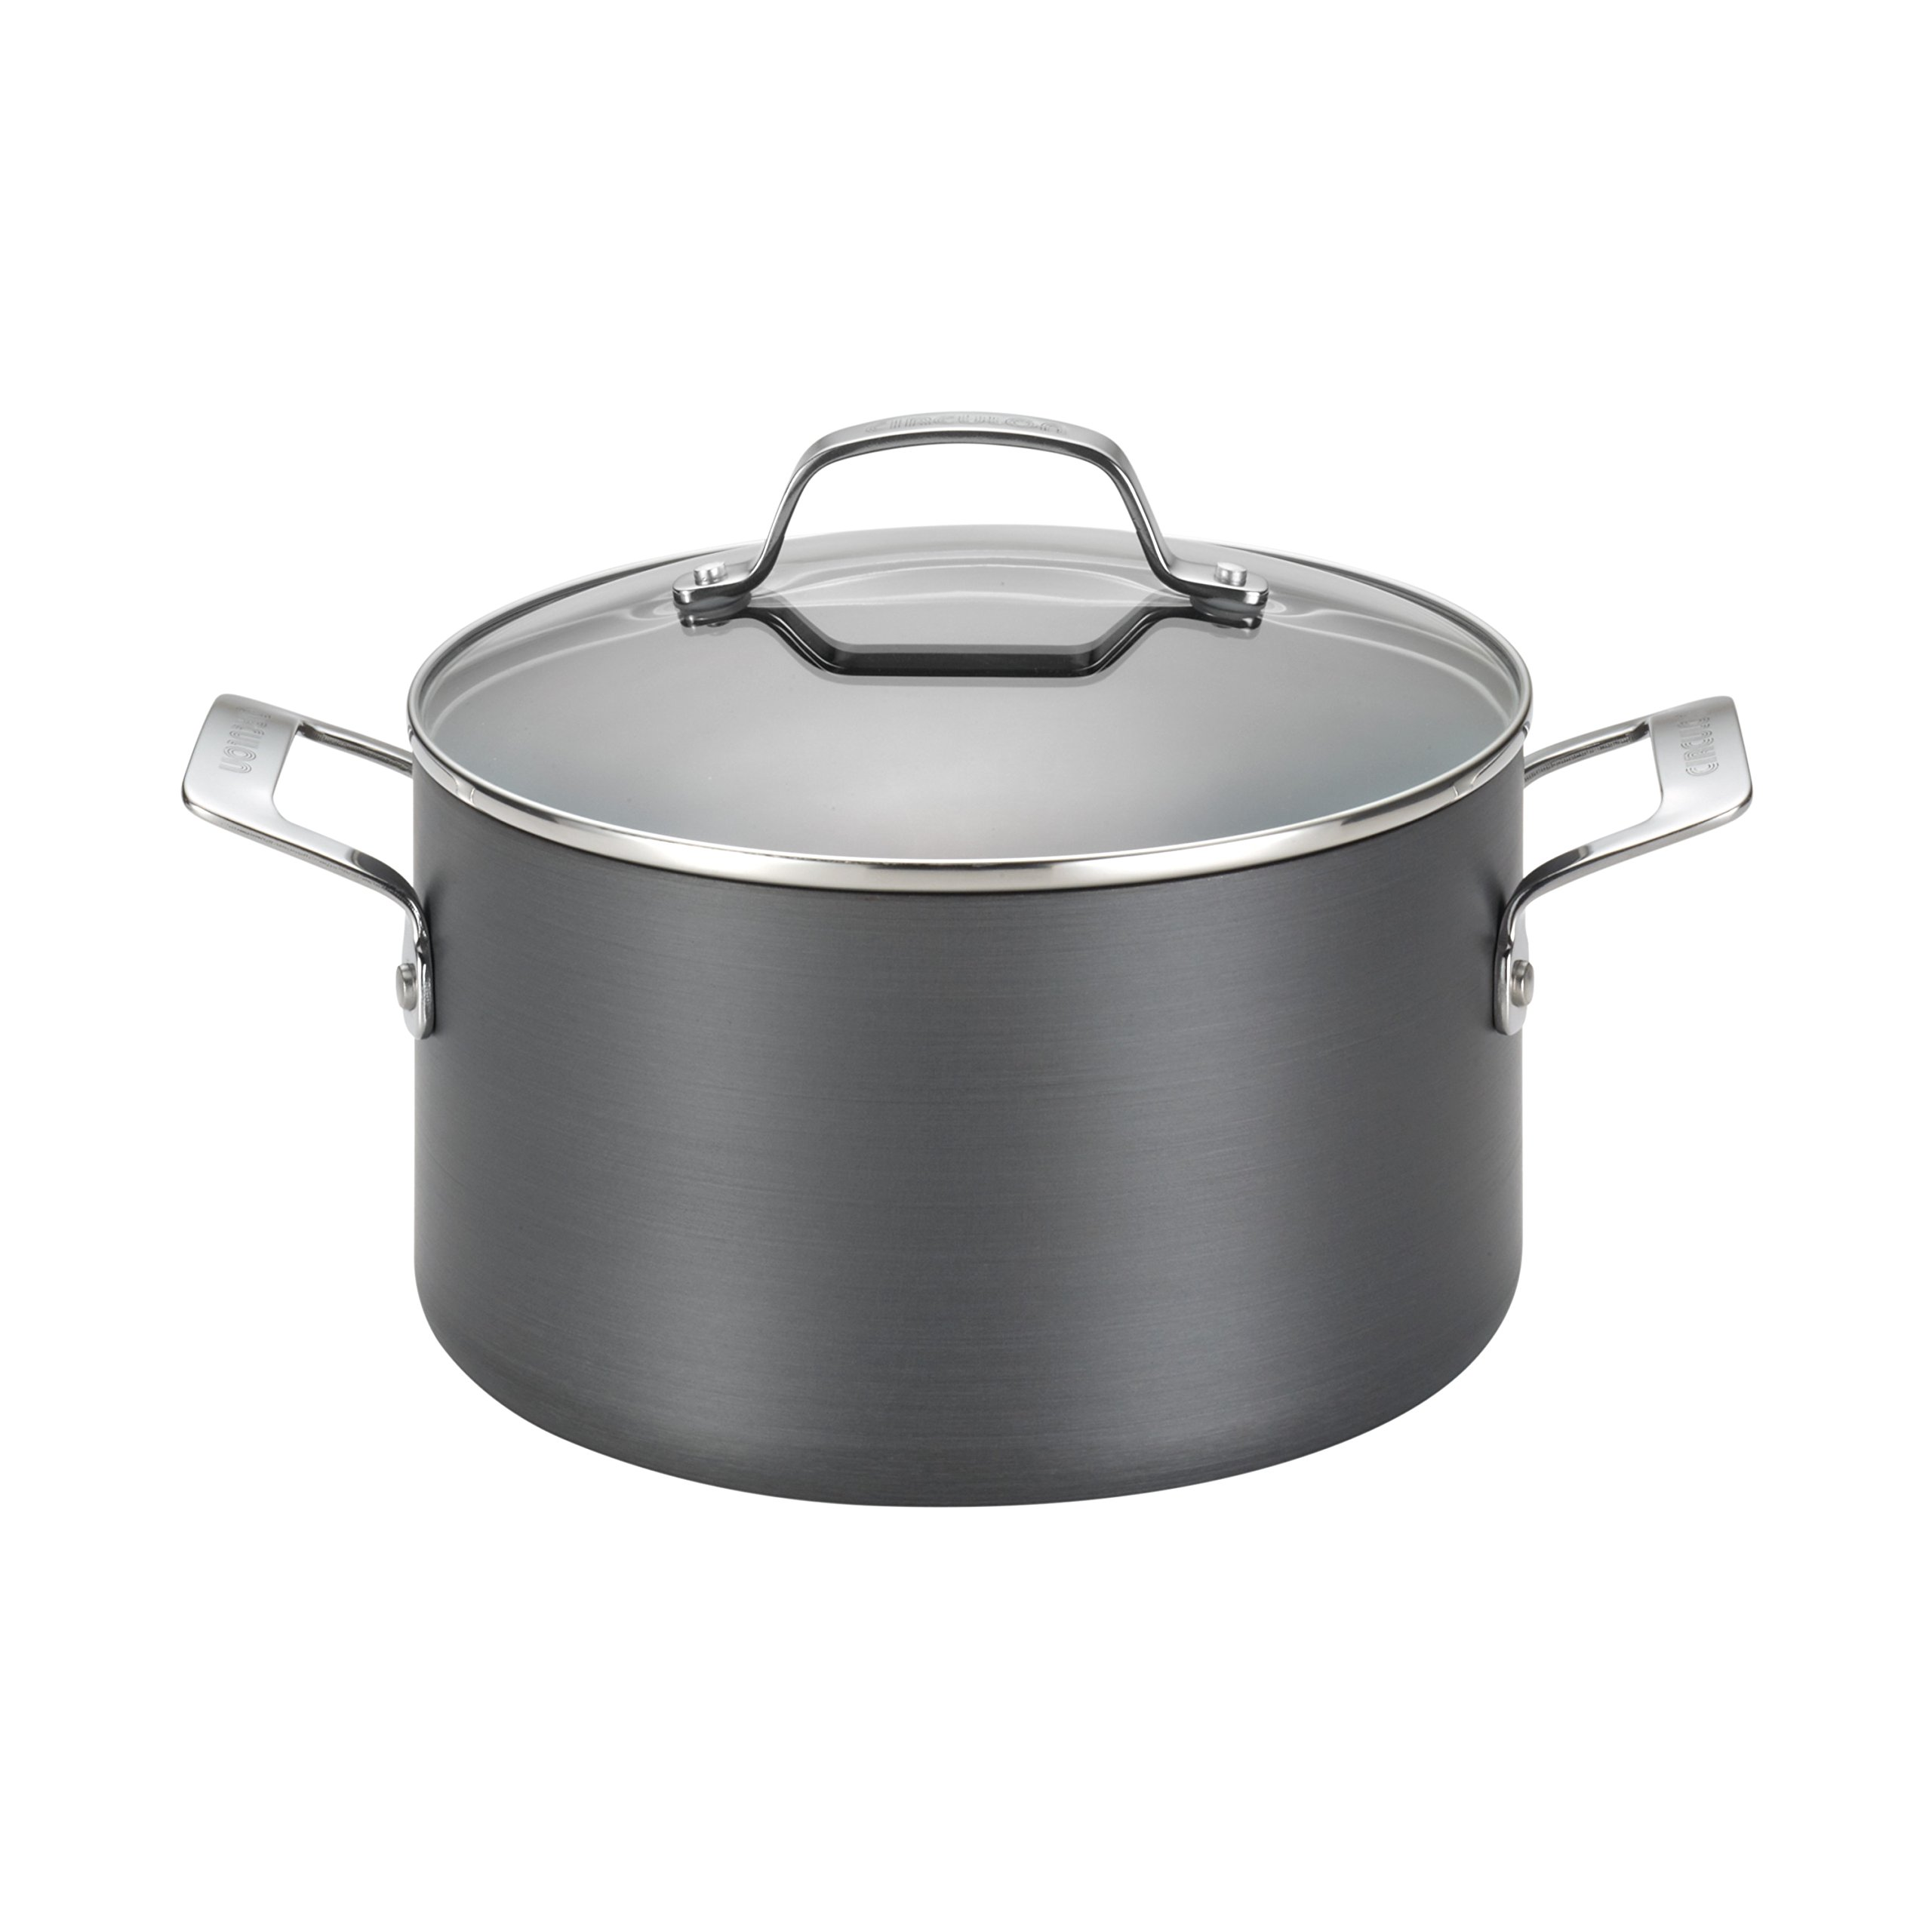 Circulon Genesis Hard-Anodized Nonstick 4-1/2-Quart Covered Dutch Oven